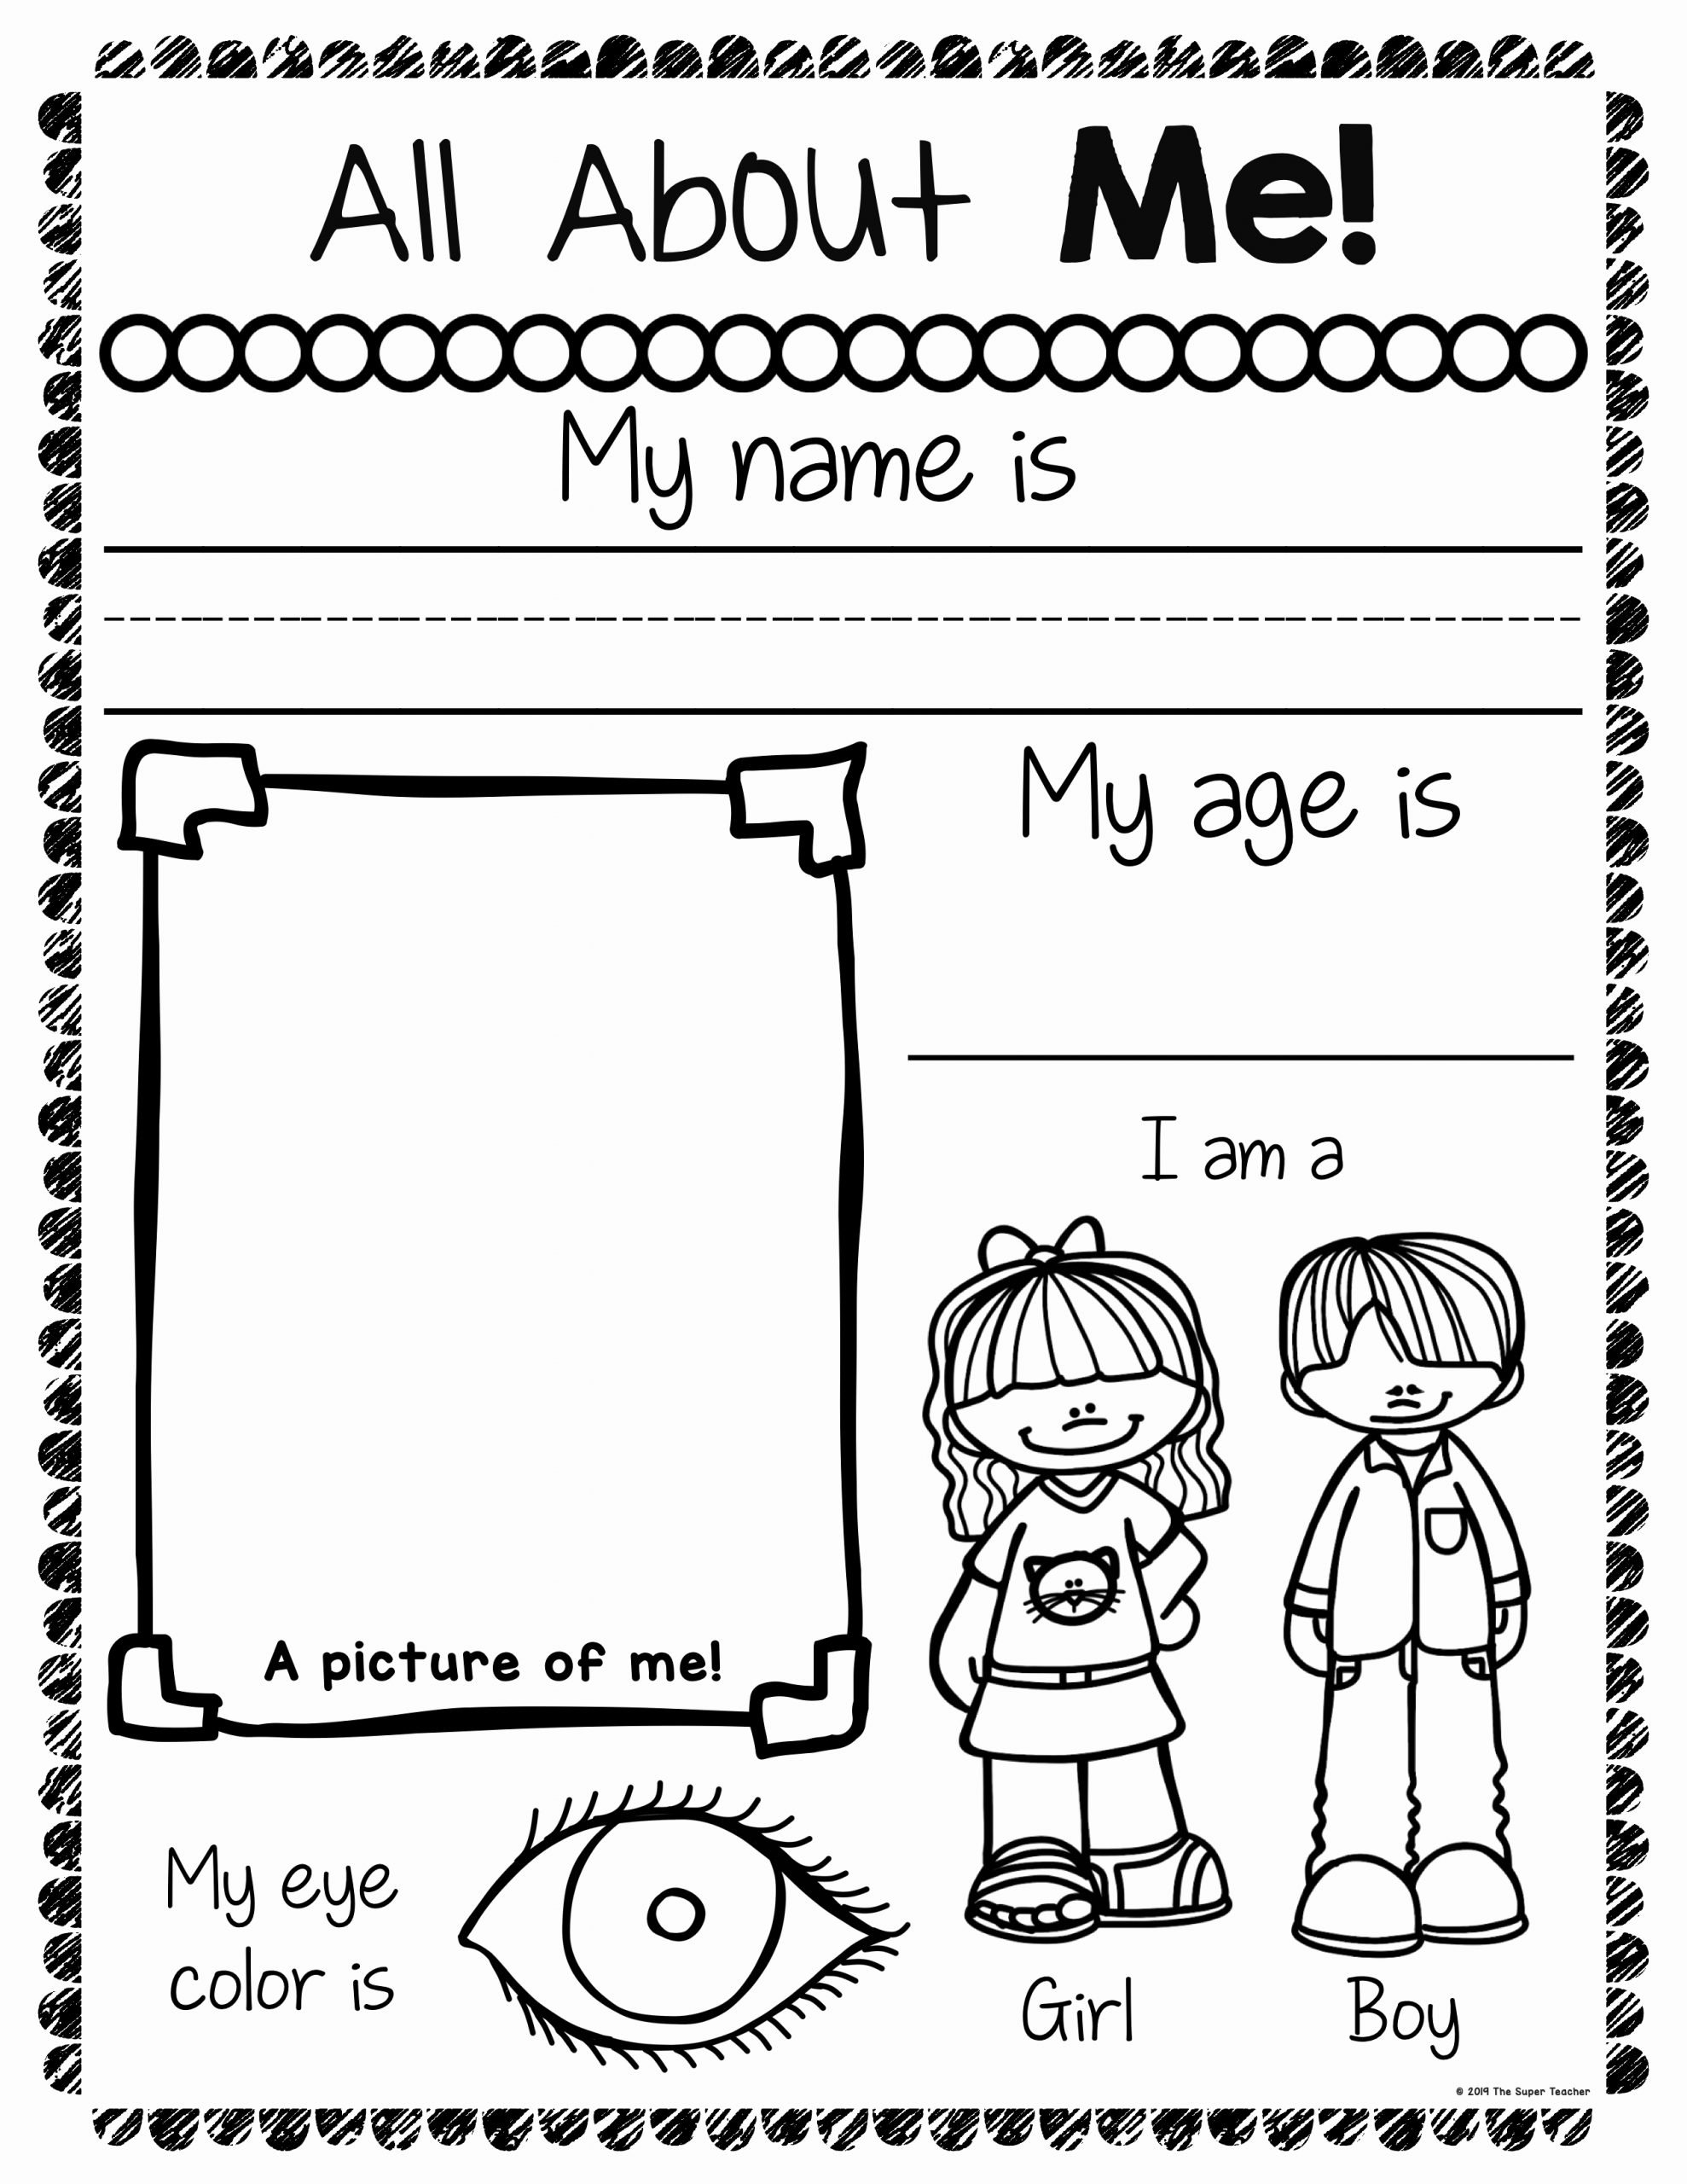 All About Me Worksheets for Preschoolers Fresh All About Me Worksheets